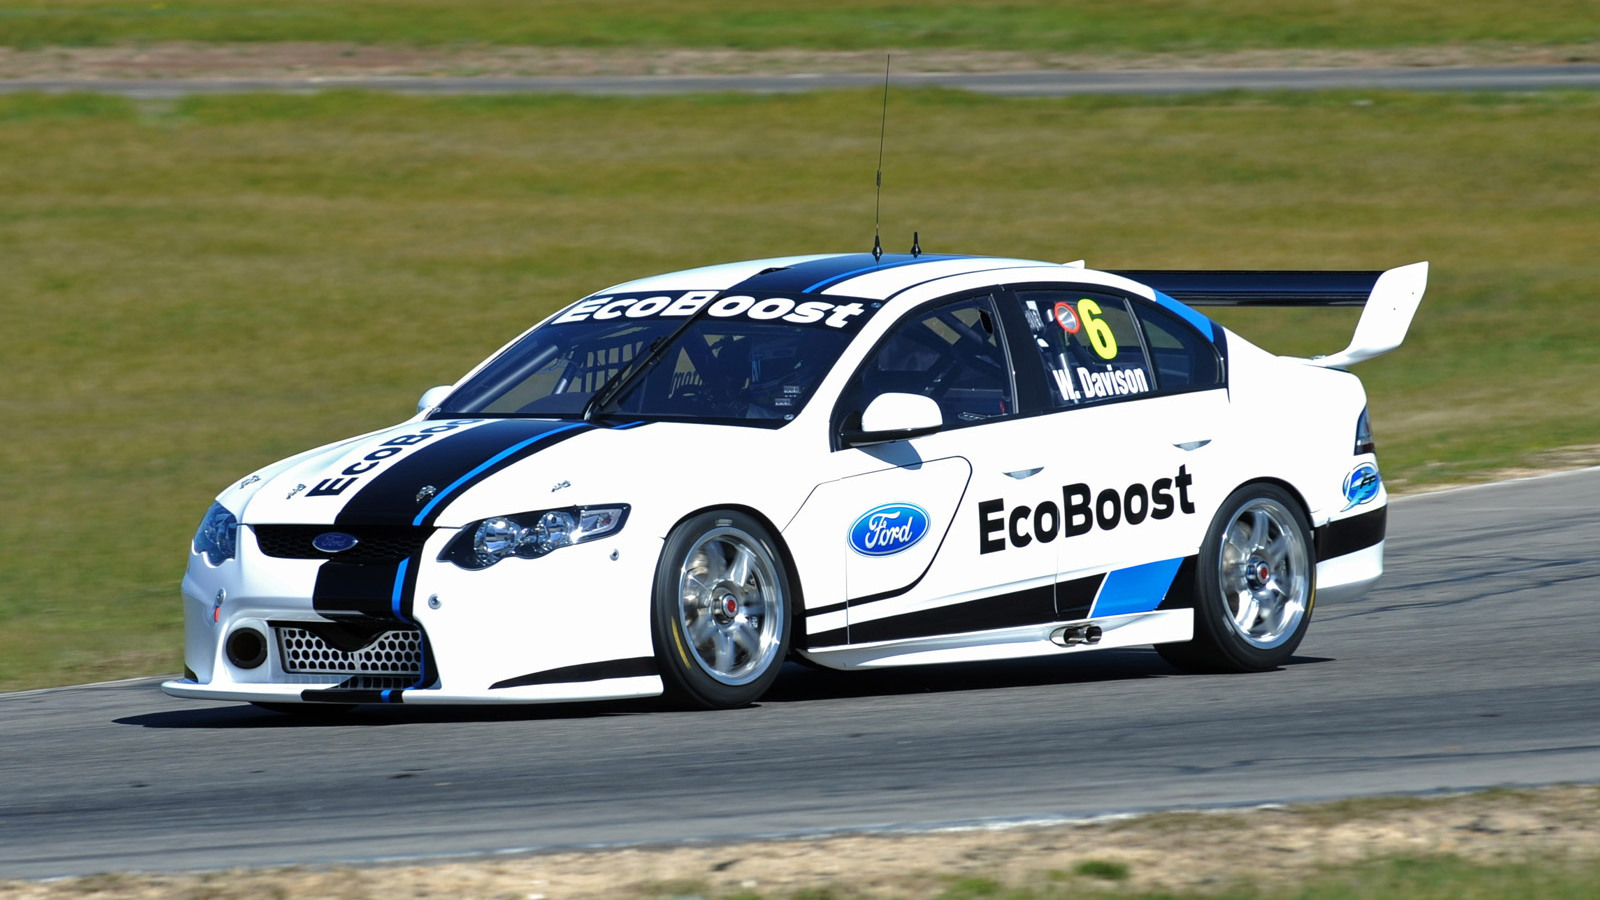 2013 Ford Falcon V8 Supercars race car